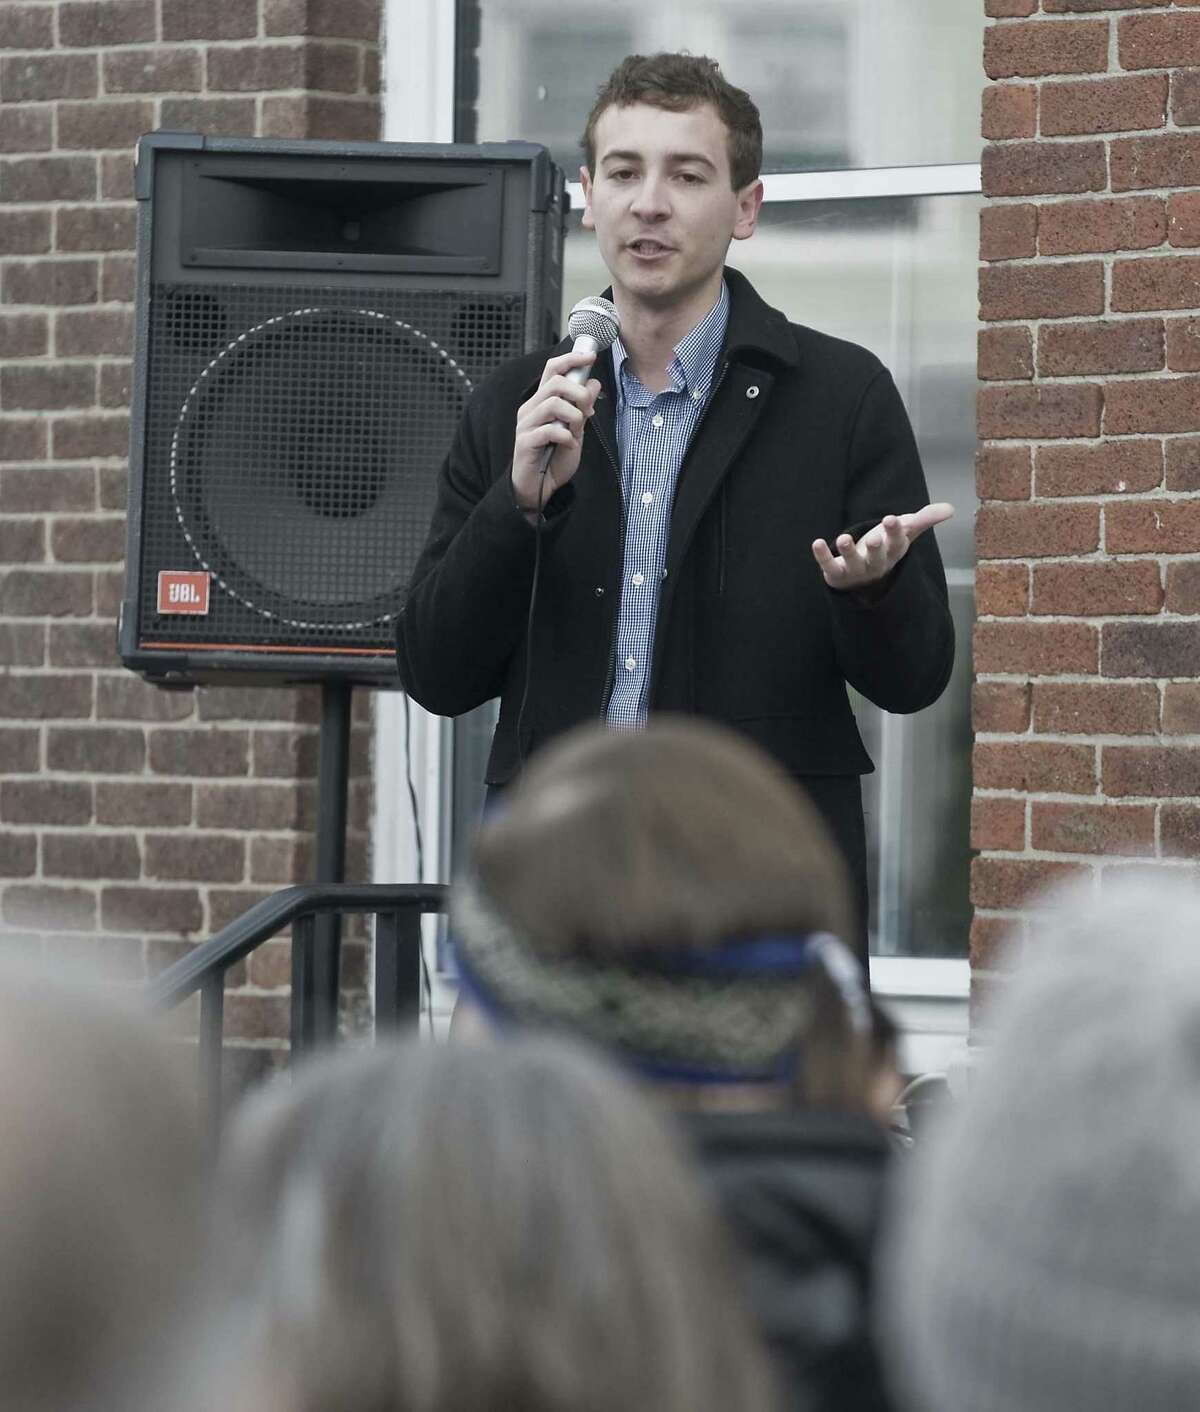 State Senator Will Haskell with remarks at a rally against Senate Bill 454, held in front of Town Hall in Ridgefield. Saturday, Feb. 23, 2019